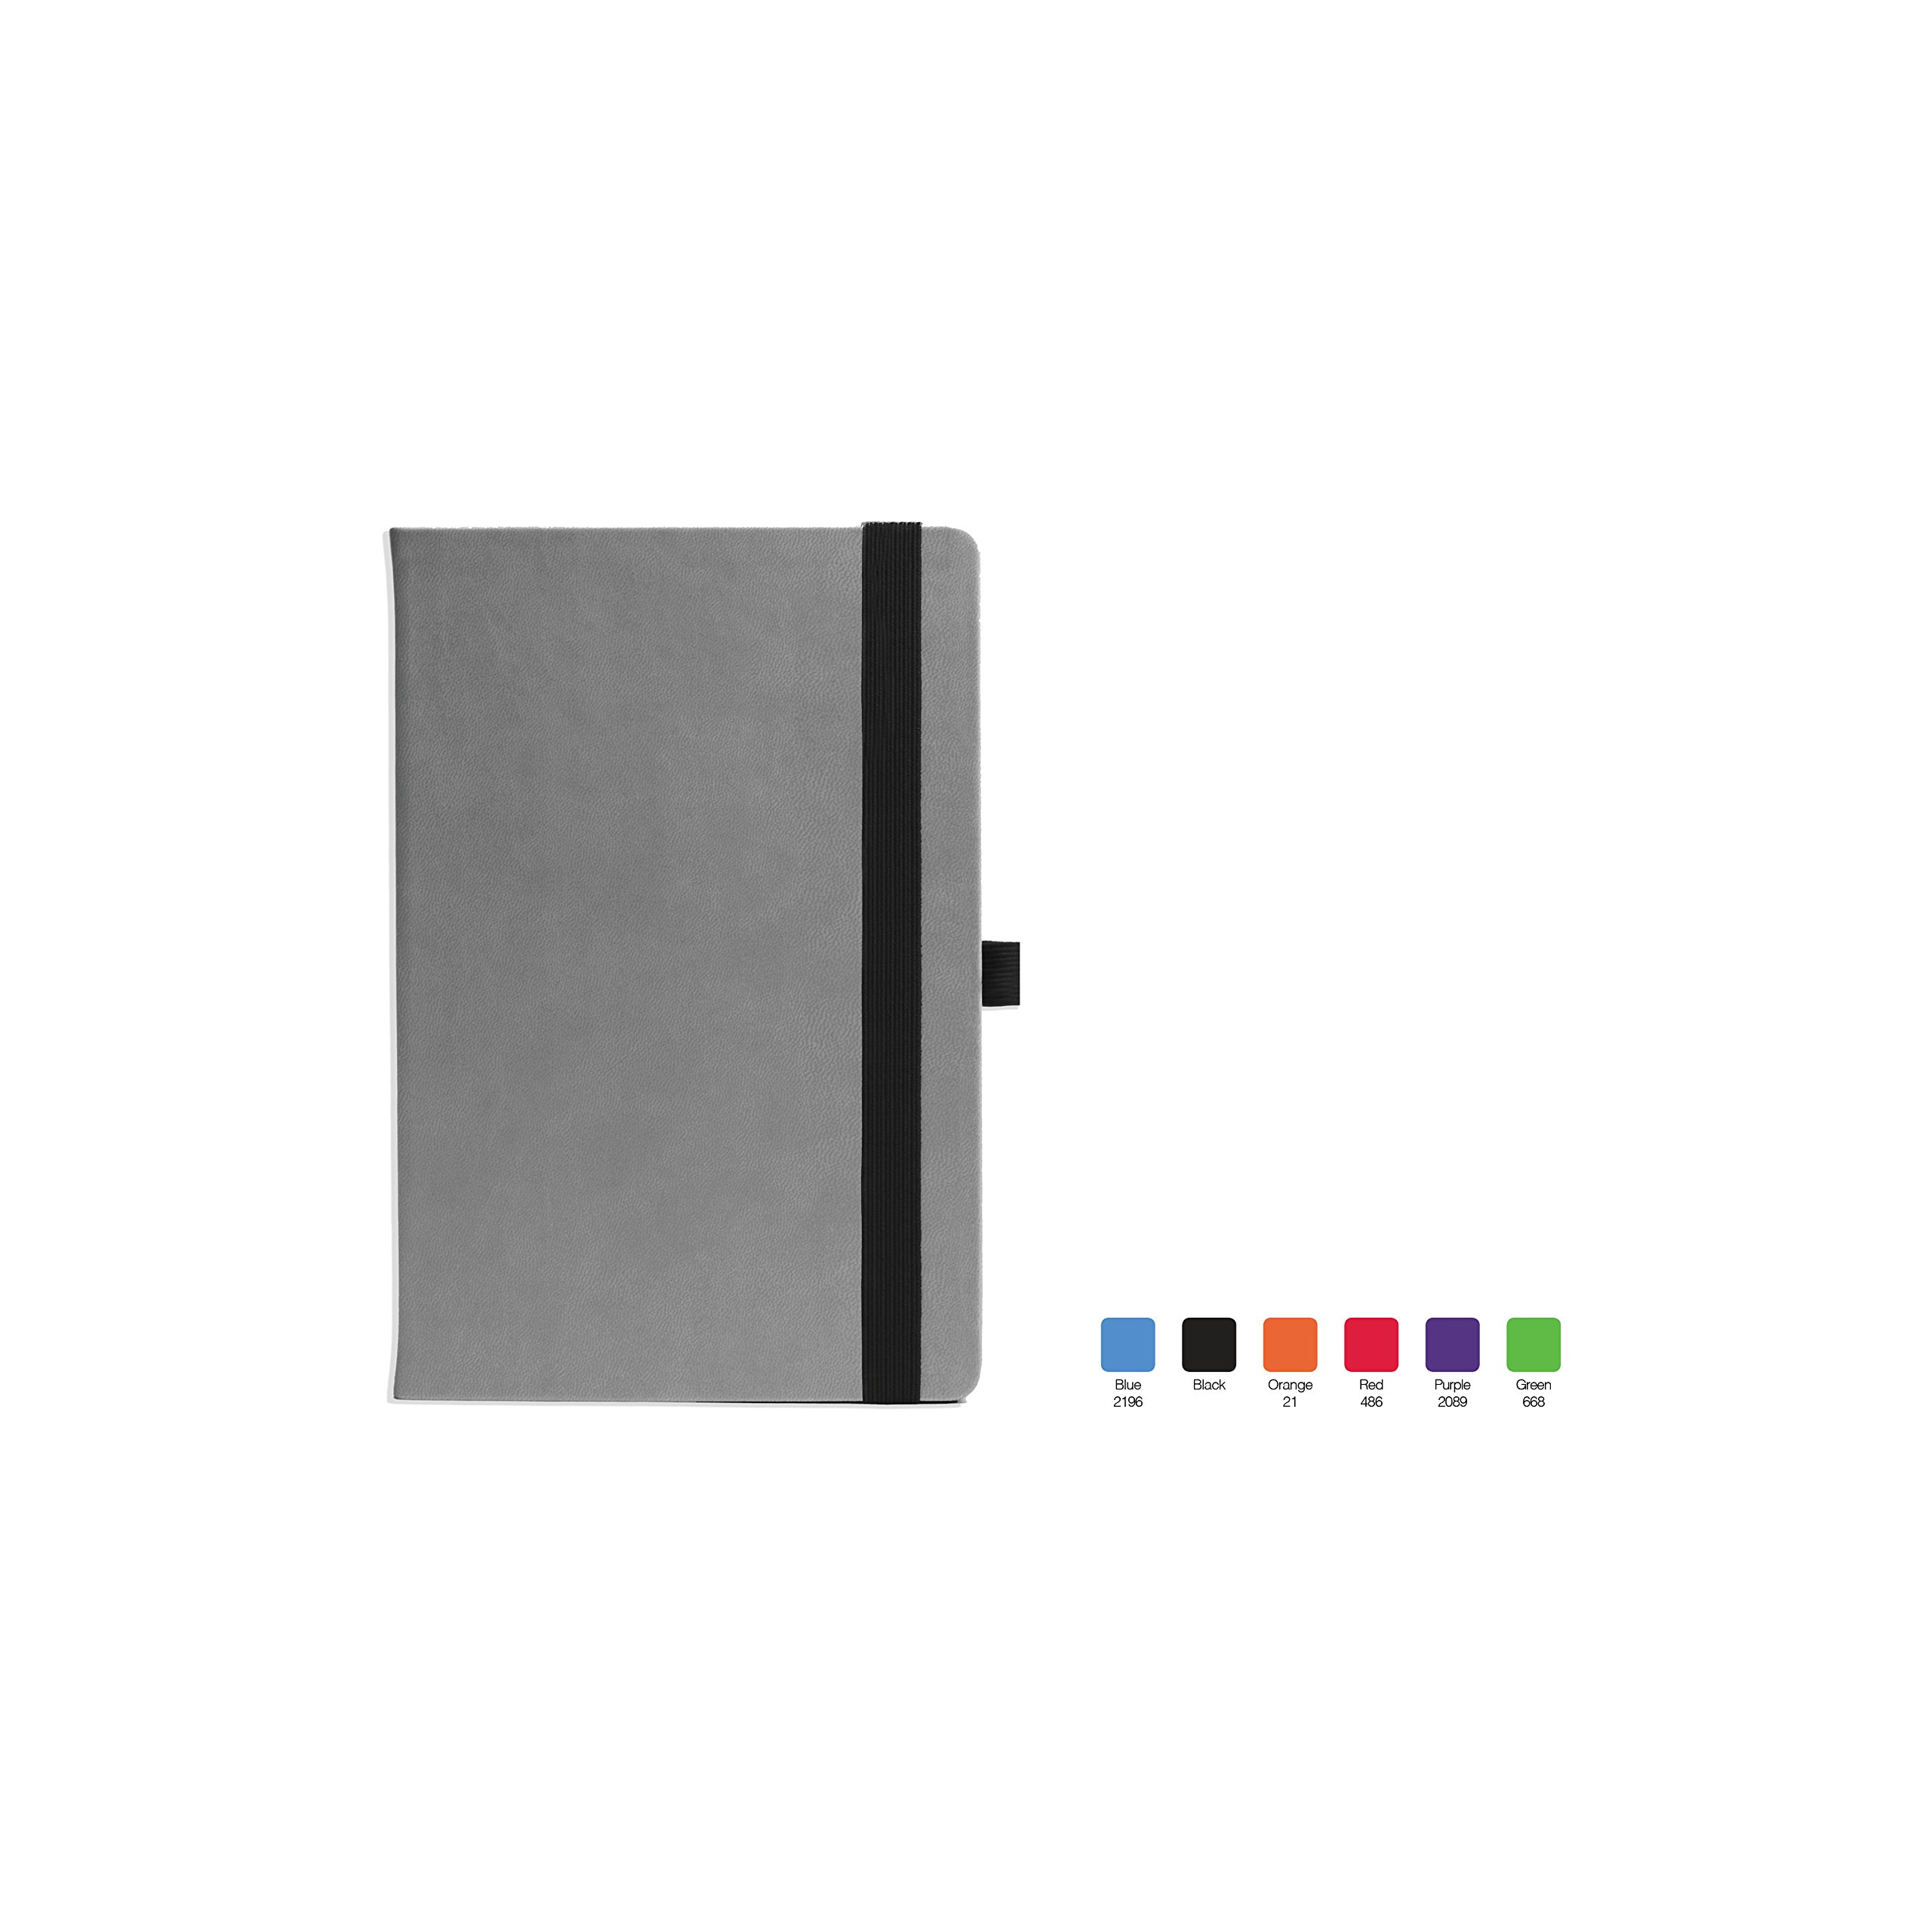 SALSA Ruled, Flexicover Executive Notebook Journal with Preimum Paper, 192 Lined Pages, Elastic closure, Pen loop, Imprintable bookmark, Black Accents, Size 5.75'' x 8.5''